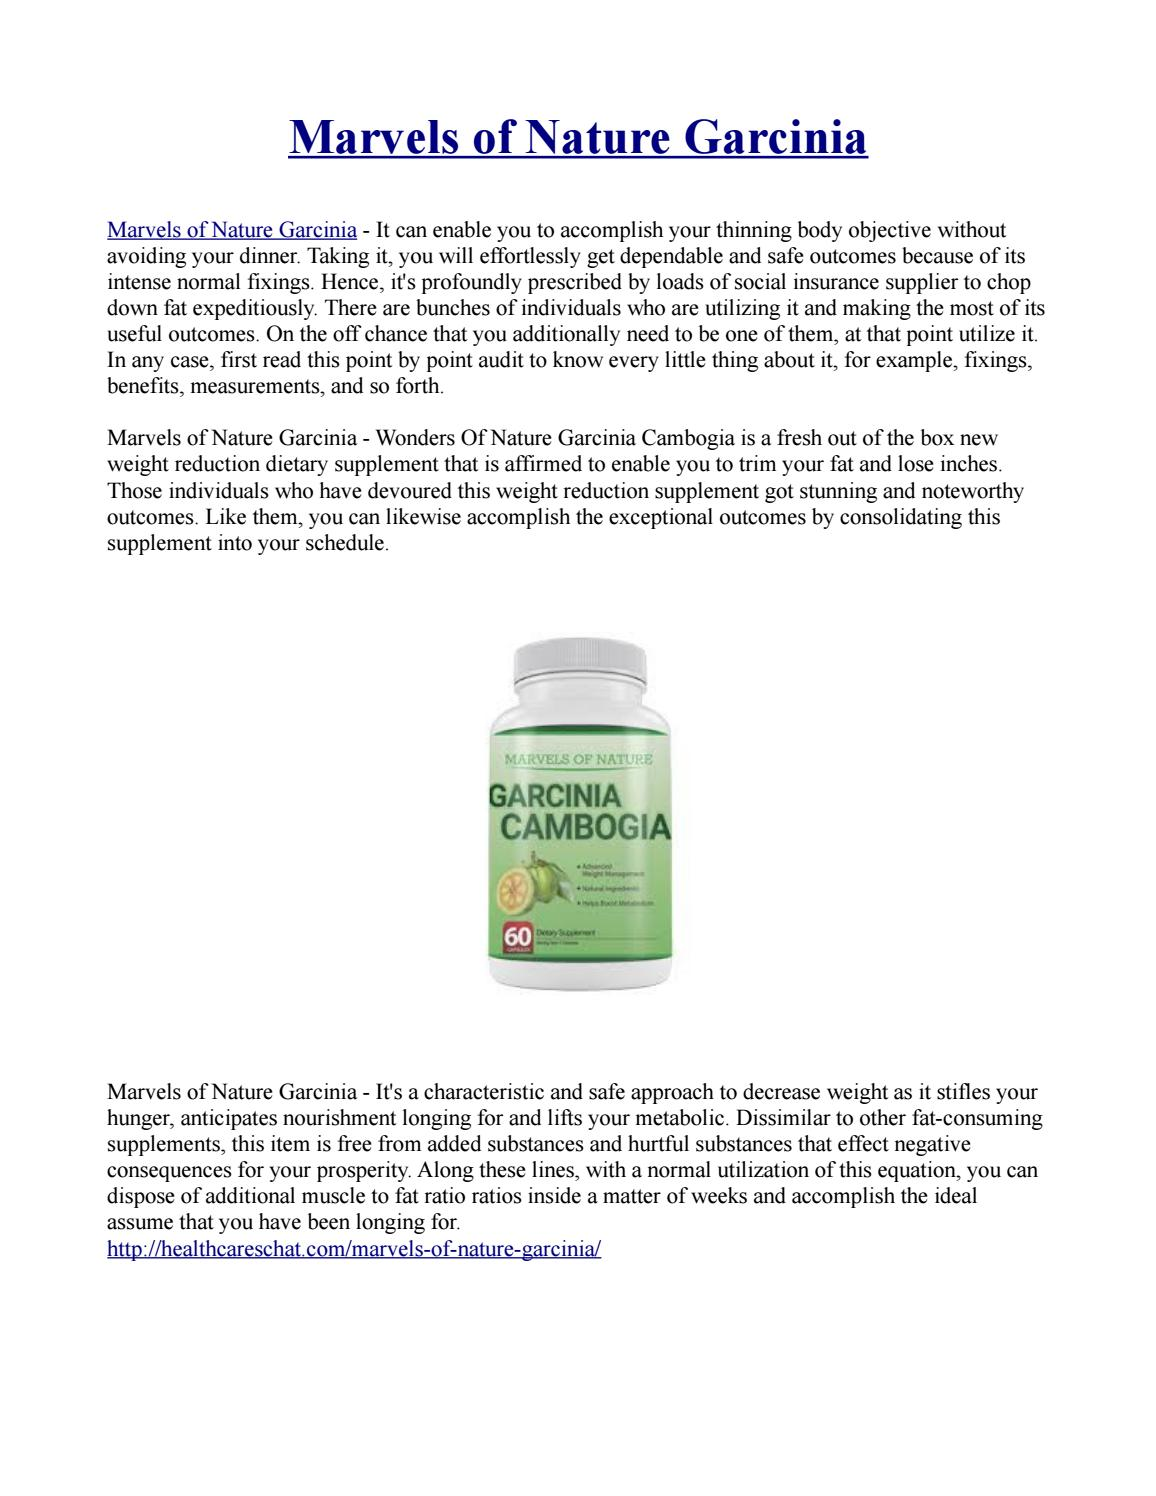 garcinia cambogia xt and natural cleanse plus canada